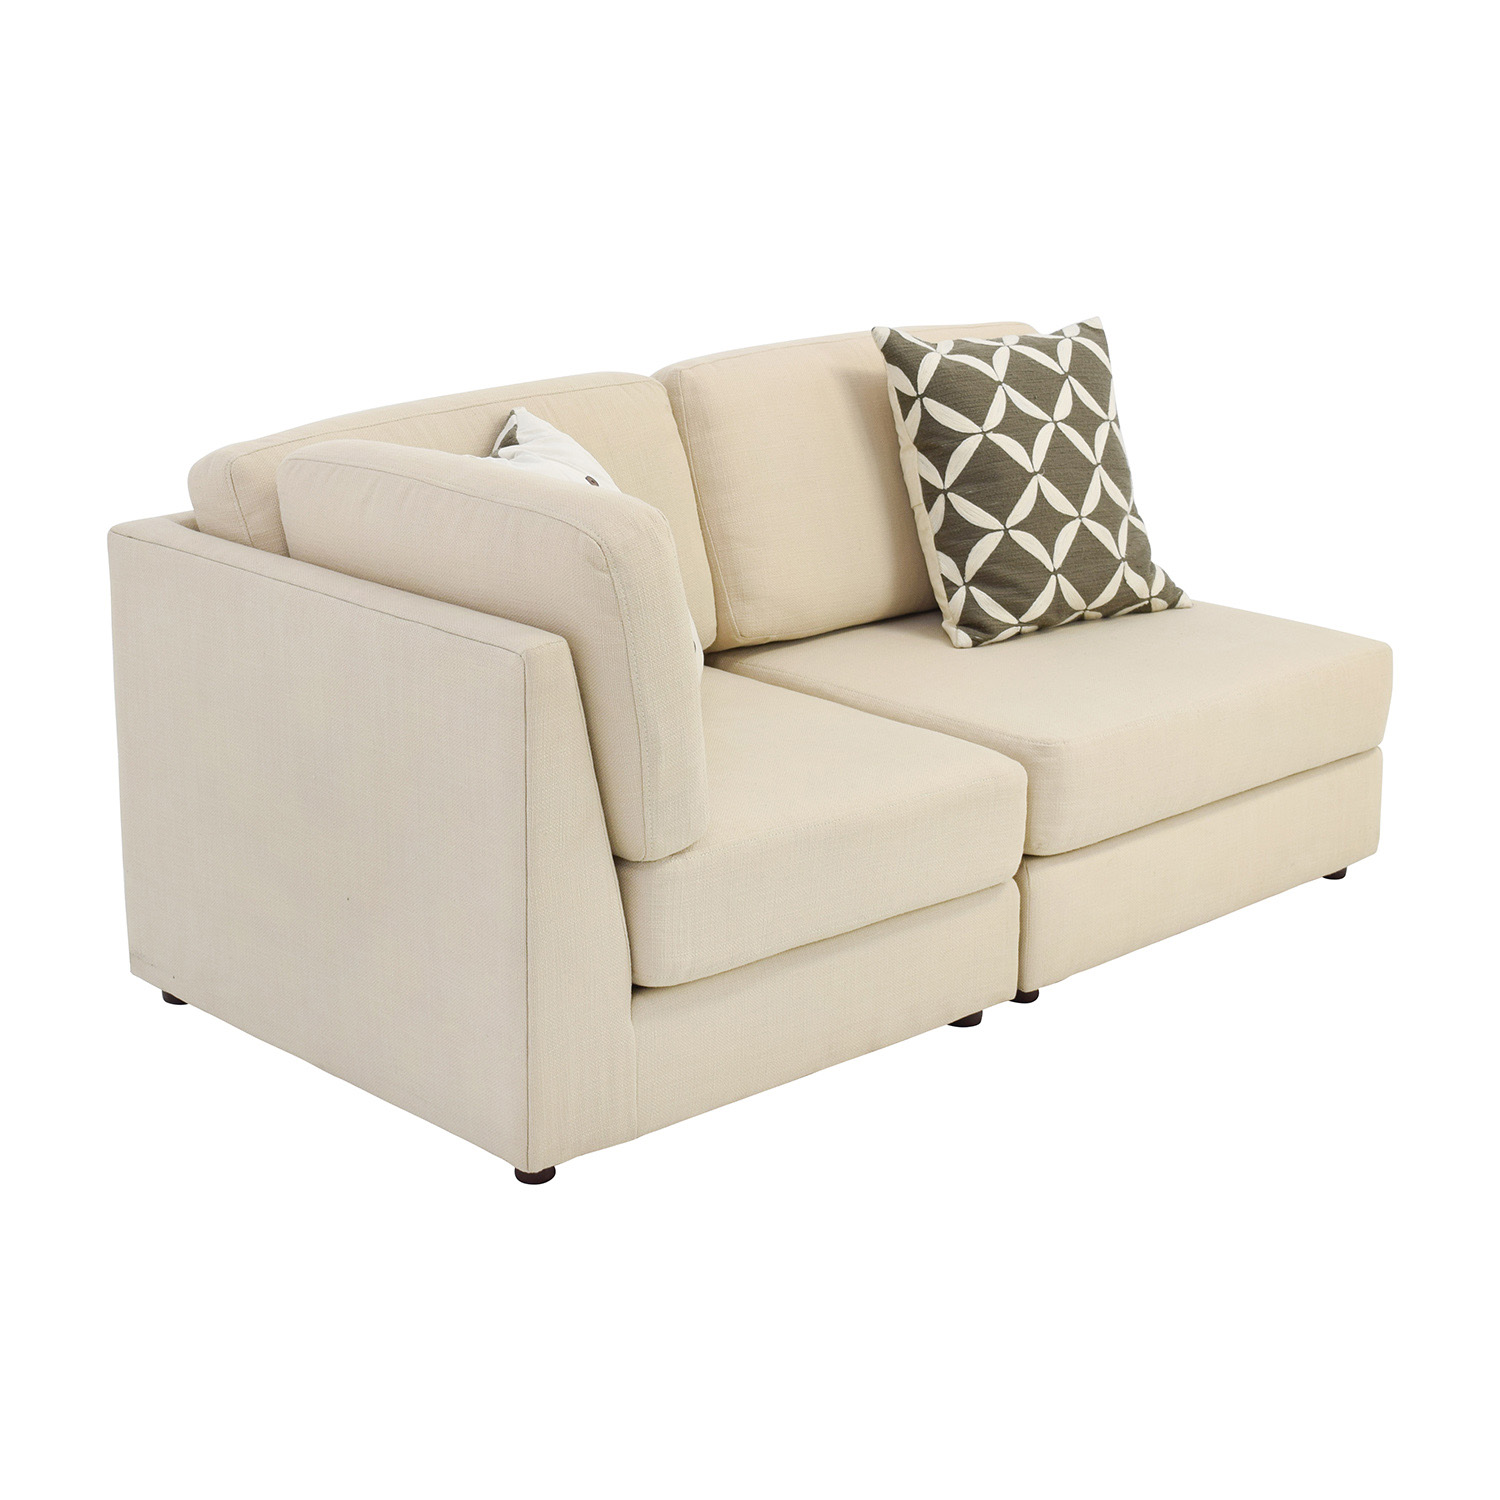 marco cream chaise sofa by factory outlet mattress warehouse 76 off west elm or two